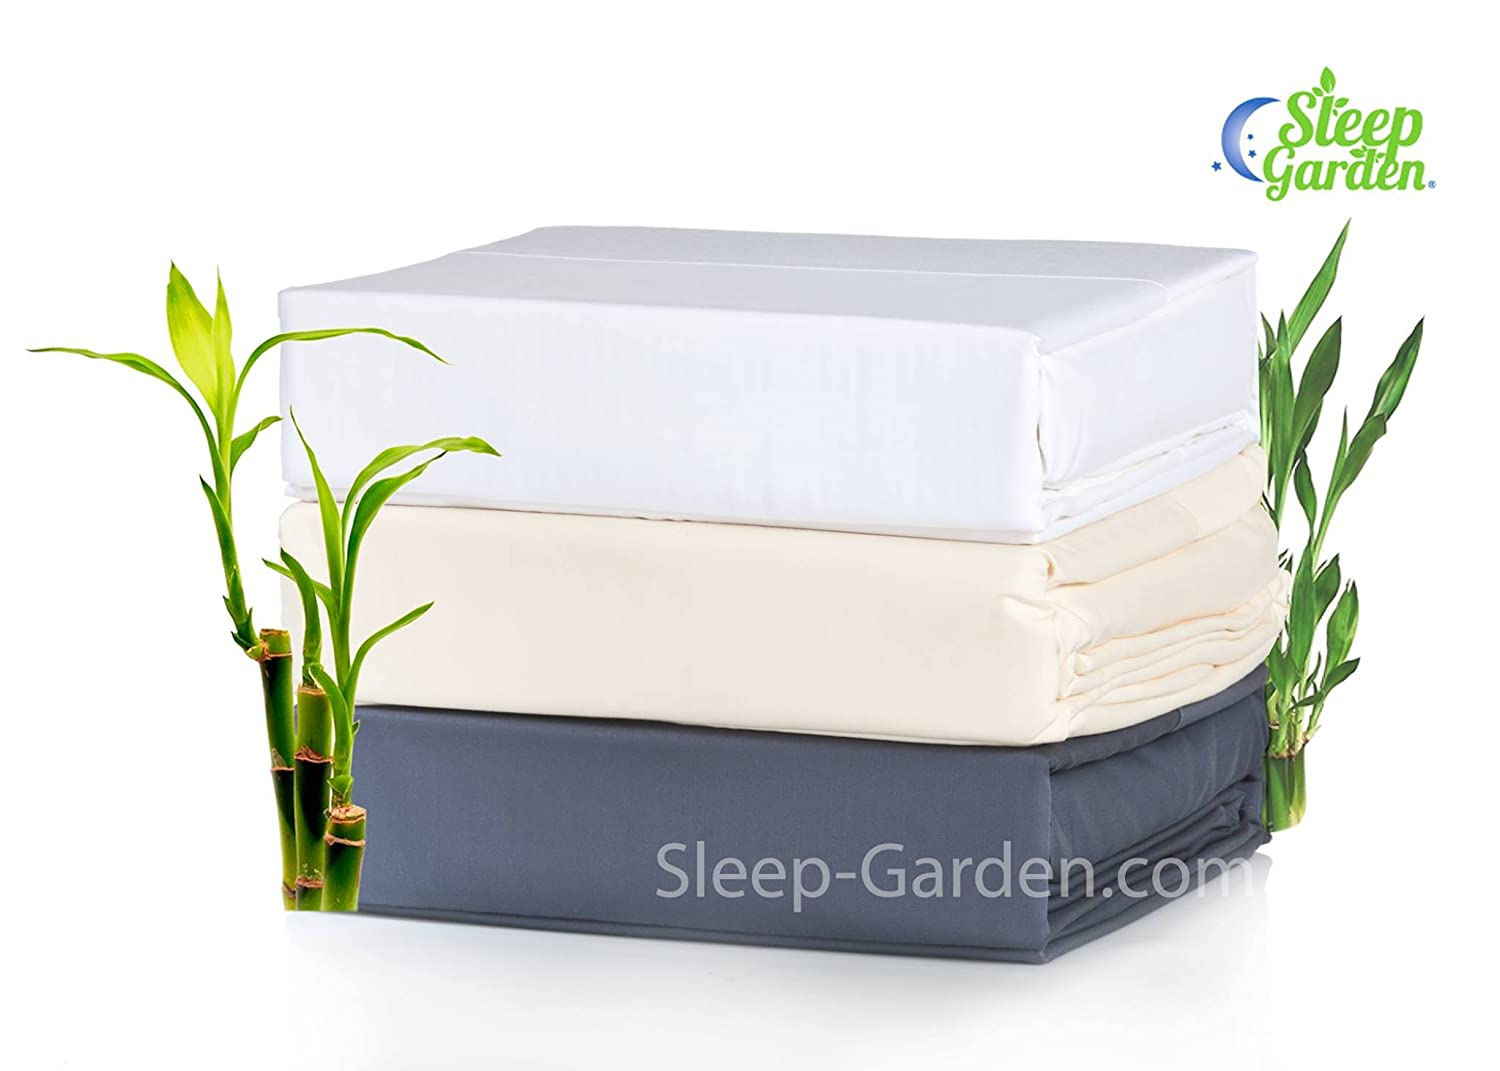 Super Soft Eco-friendly Ivory 100/% Bamboo Hotel Quality 3 Piece Twin Size Sheet Set Hypoallergenic 320-Thread-Count GMO Free SLEEP GARDEN Bamboo Sheets